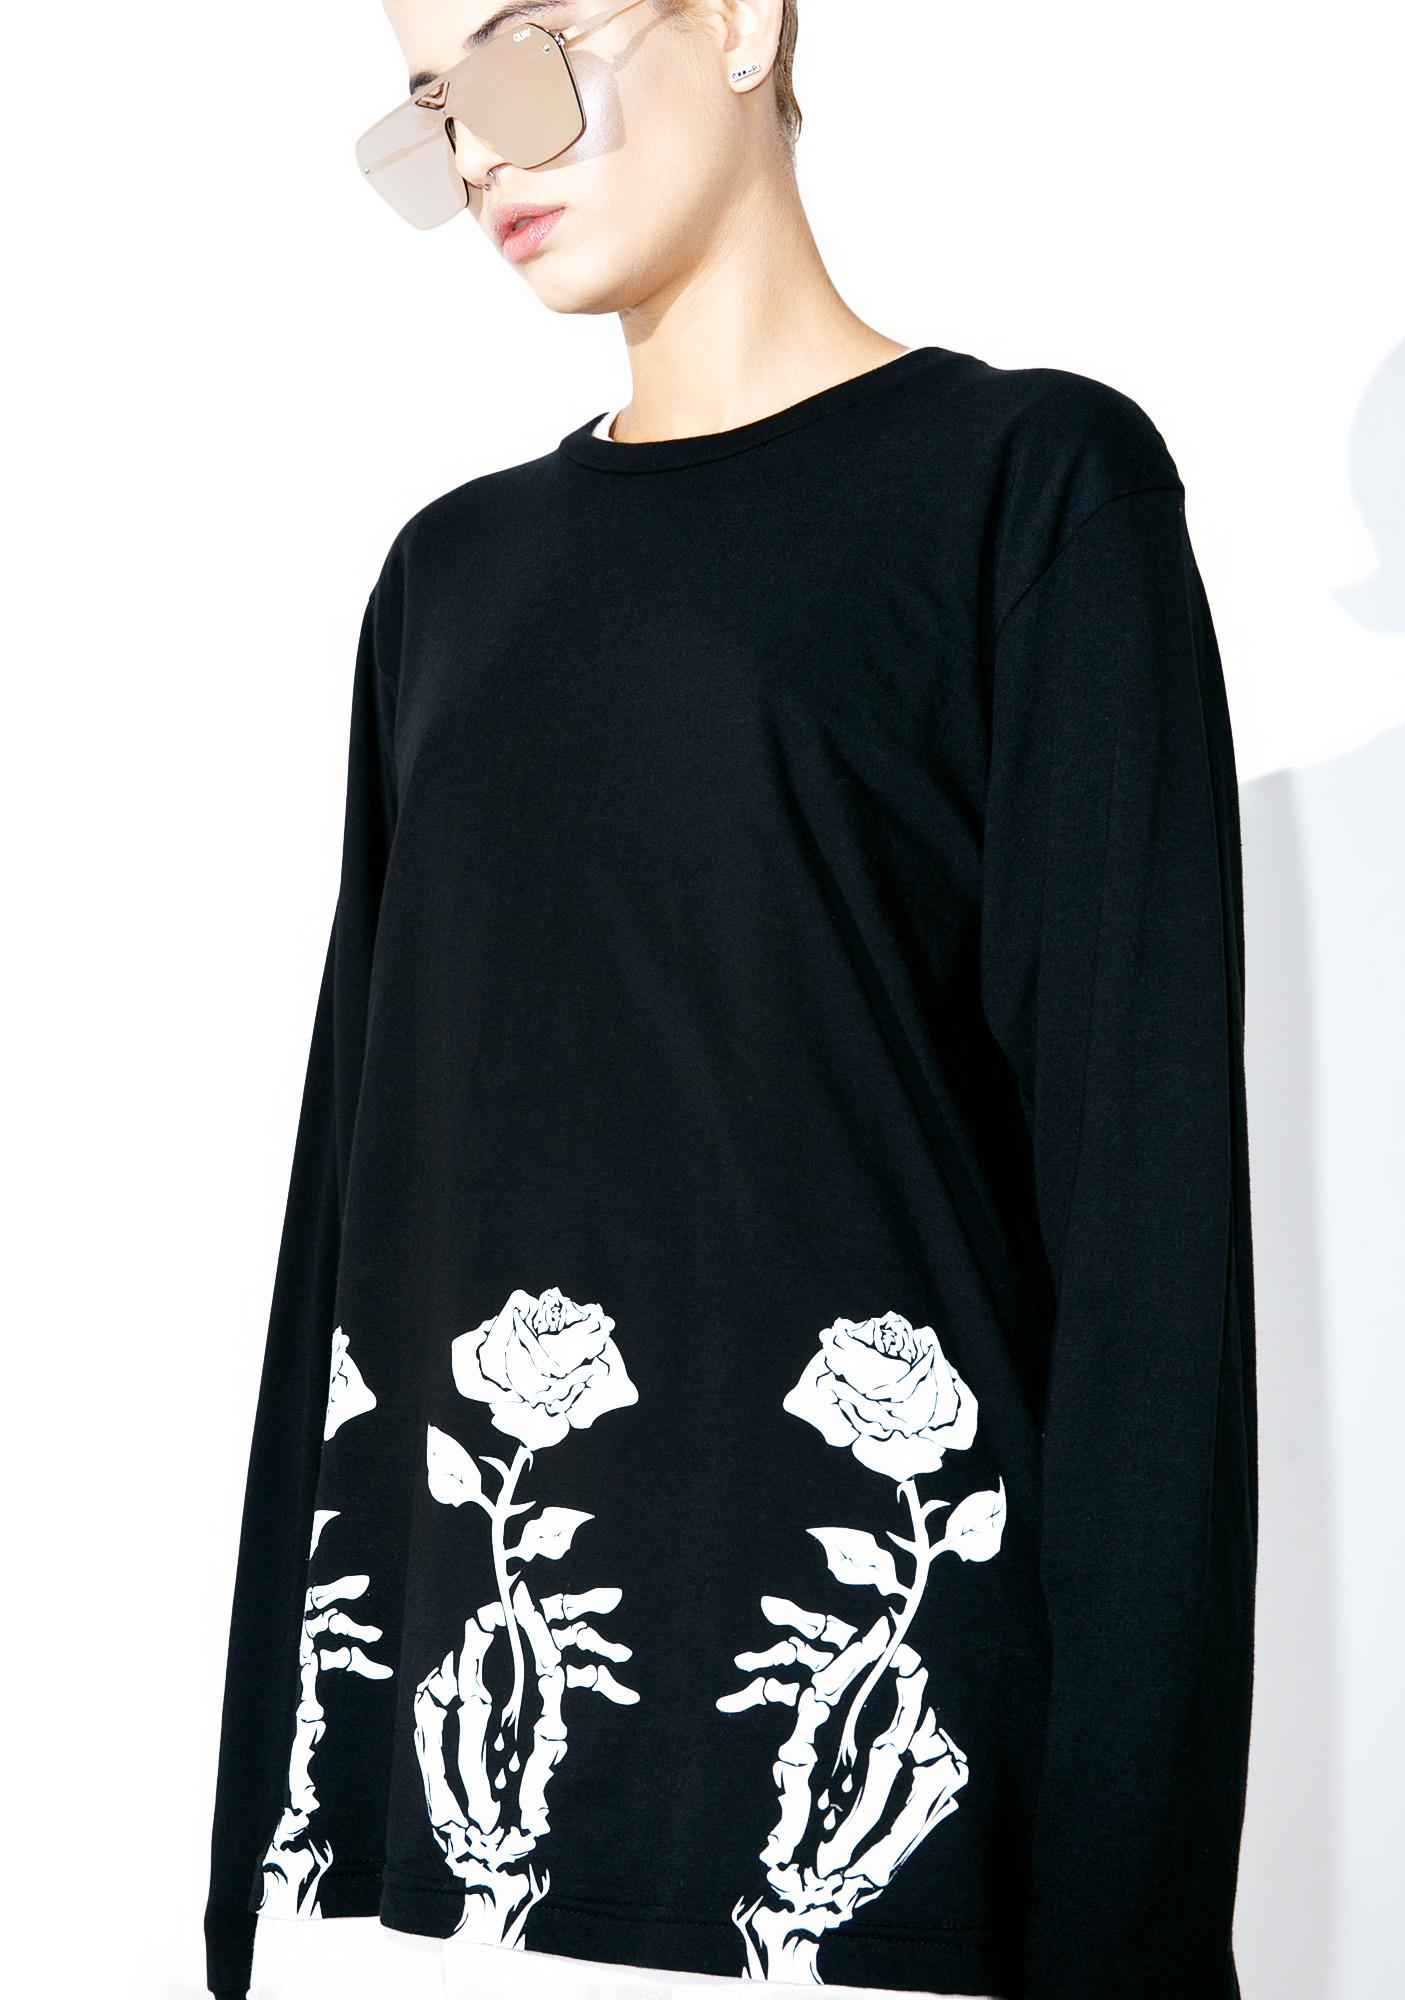 ABVHVN While Alive Long Sleeve T-Shirt